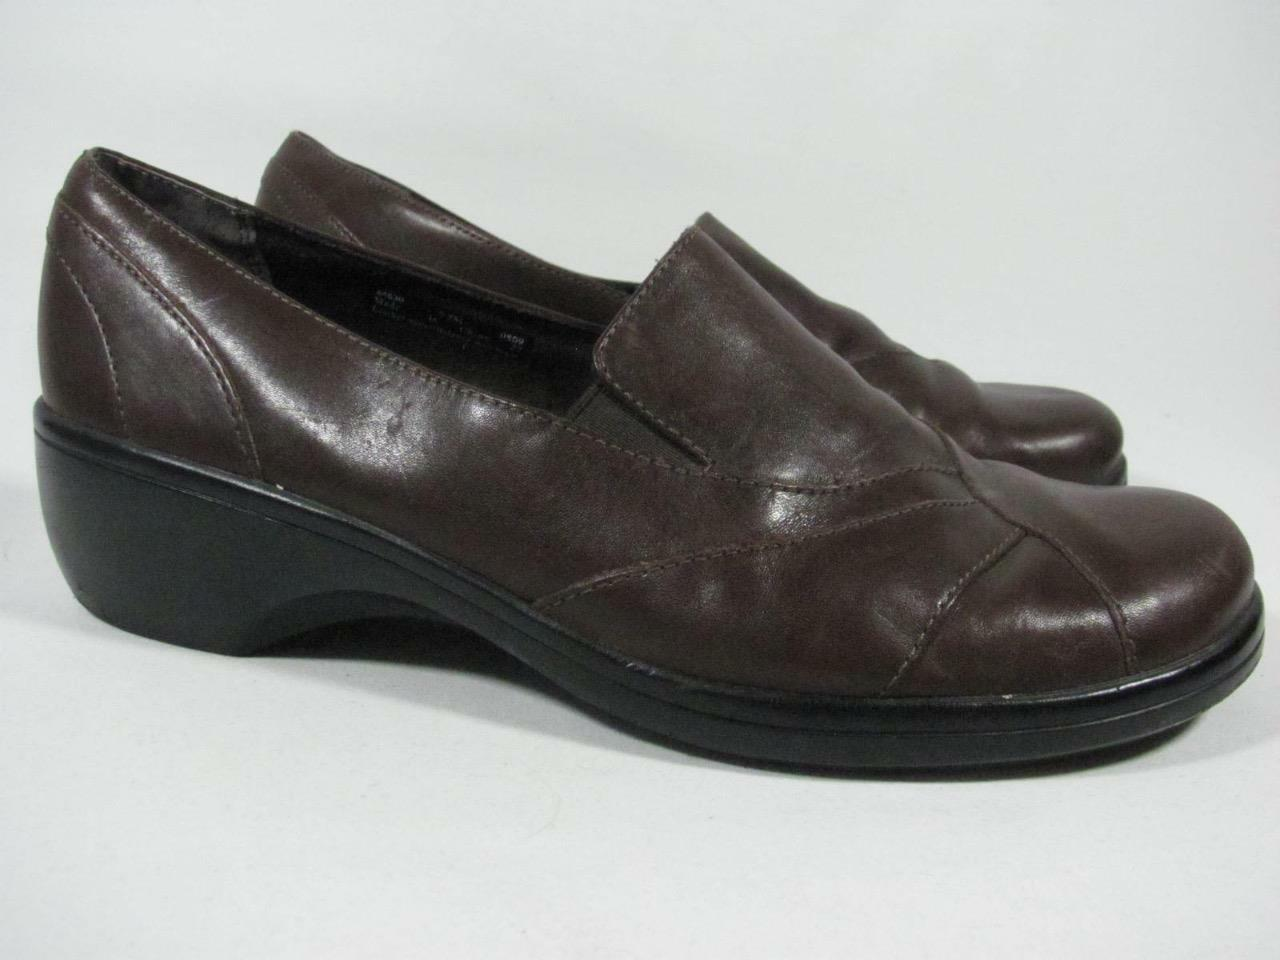 Clarks Wedge Loafer Loafer Wedge Women size 9 Brown Leather 7b09c0